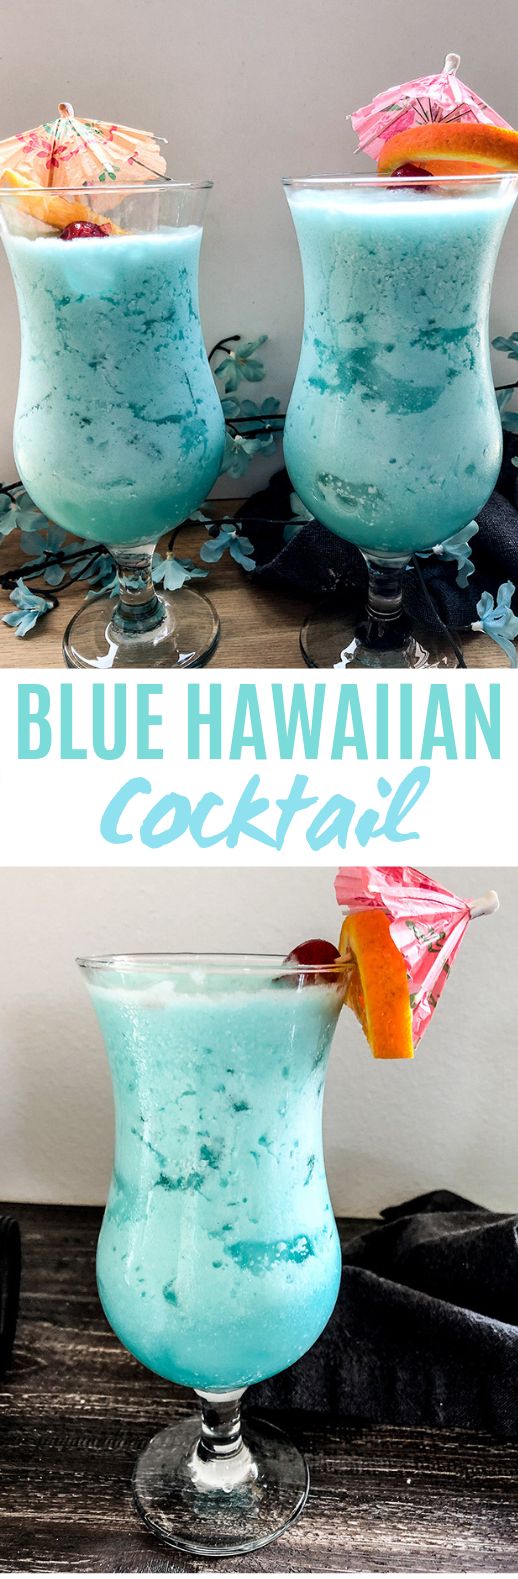 Blue Hawaiian Cocktail #drinks #cocktails